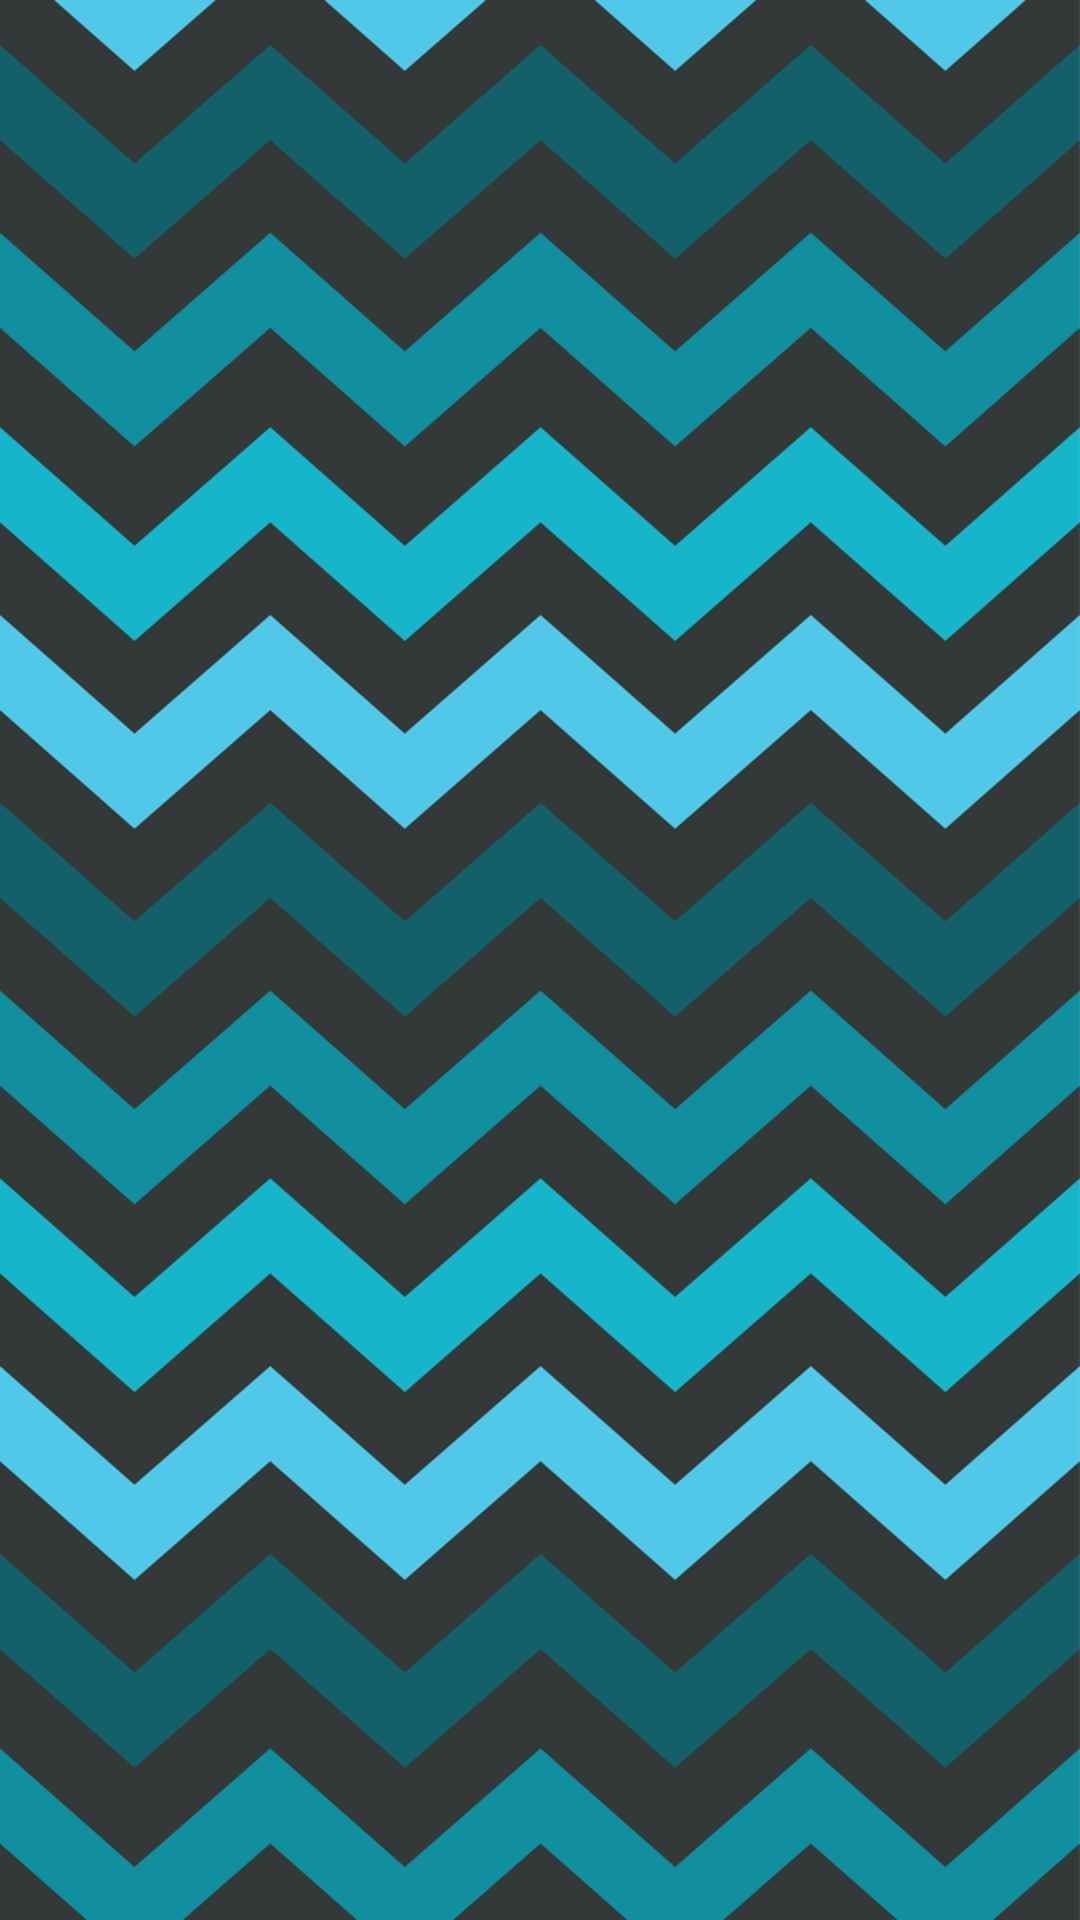 Chevron Dim Blue and Black iPhone 6 Plus Wallpaper – Zigzag Pattern,  #iPhone #